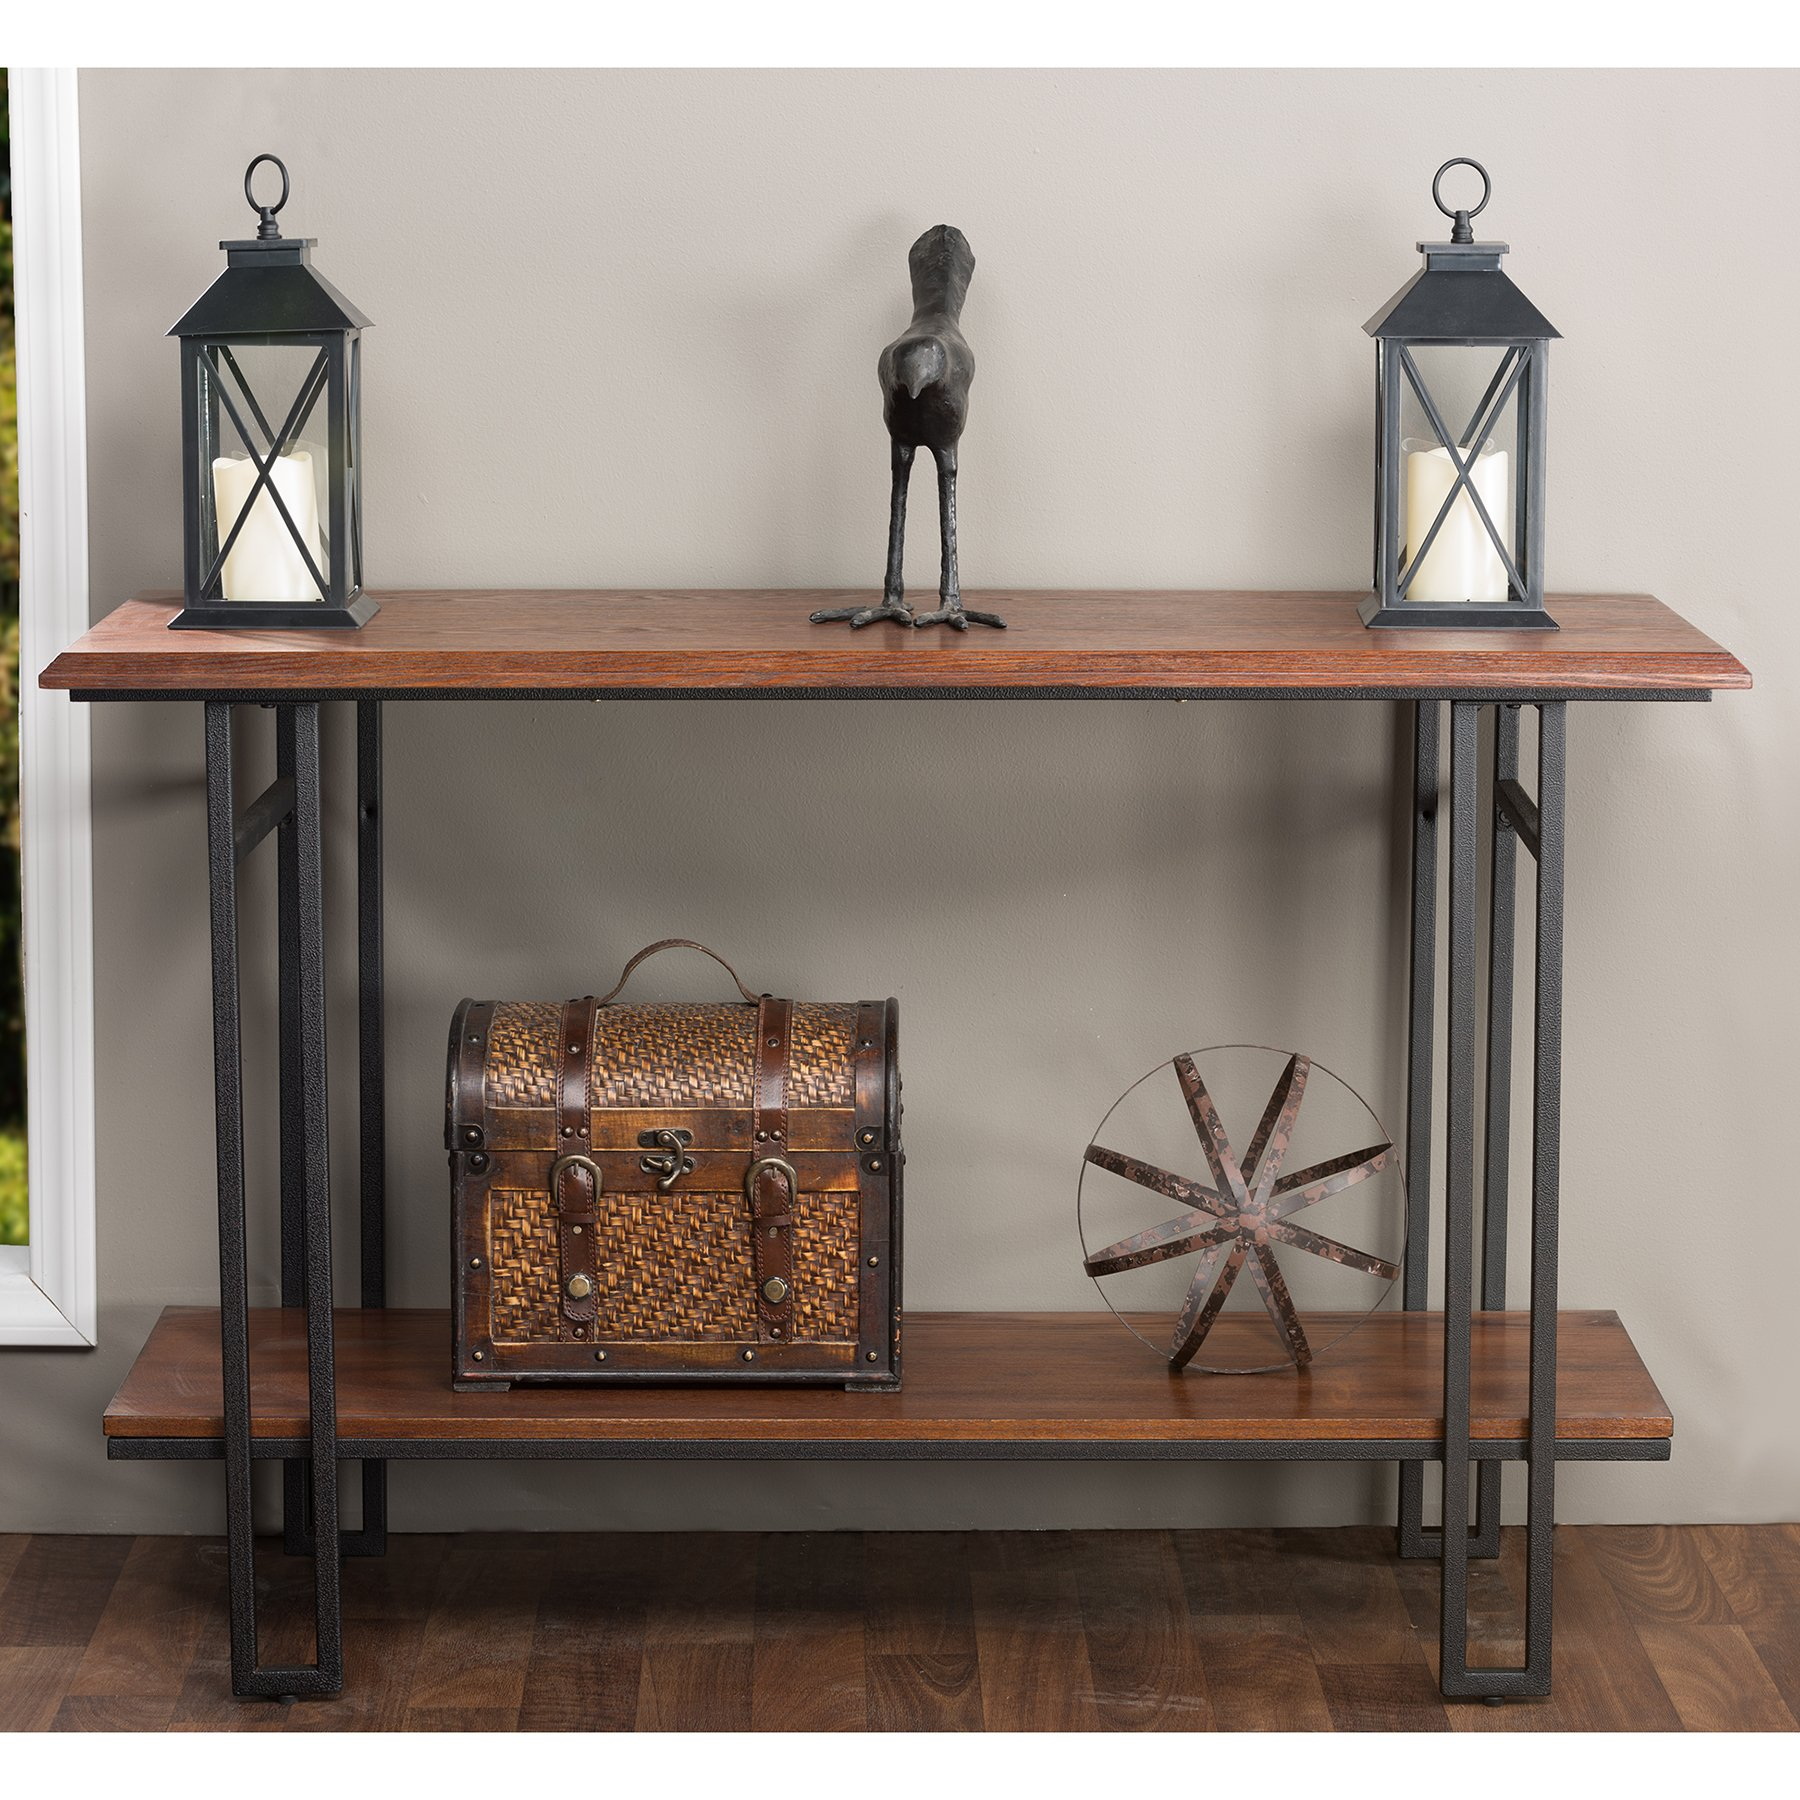 Baxton Studio Newcastle Wood and Metal Console Table, Brown by Baxton Studio